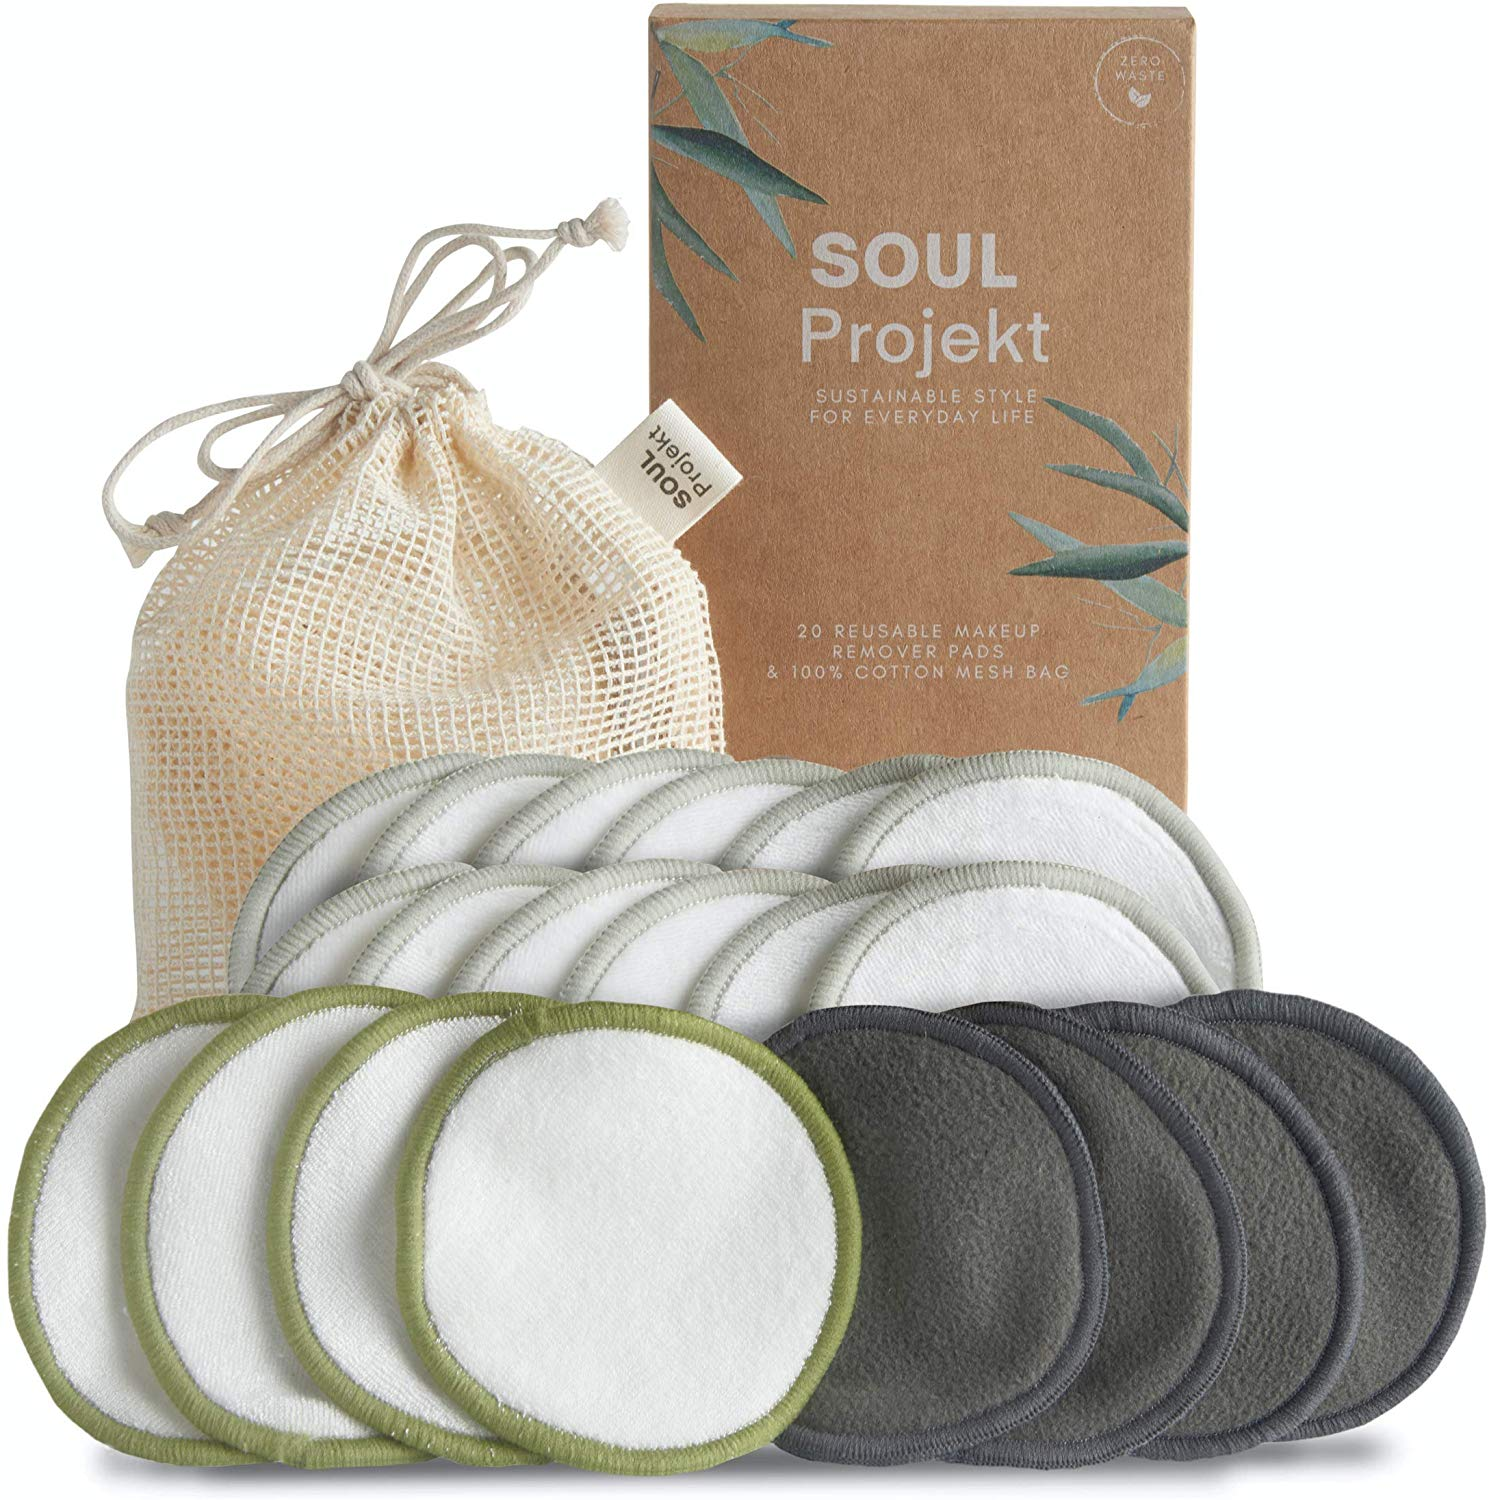 Soul Projekt 20 x Reusable Make Up Remover Pads, 3 Layers, Washable Organic Bamboo Cotton Cleansing Face Wipes, Mesh Laundry Bag, Eco-Friendly & Zero Waste, For All Skin Types (8cm)